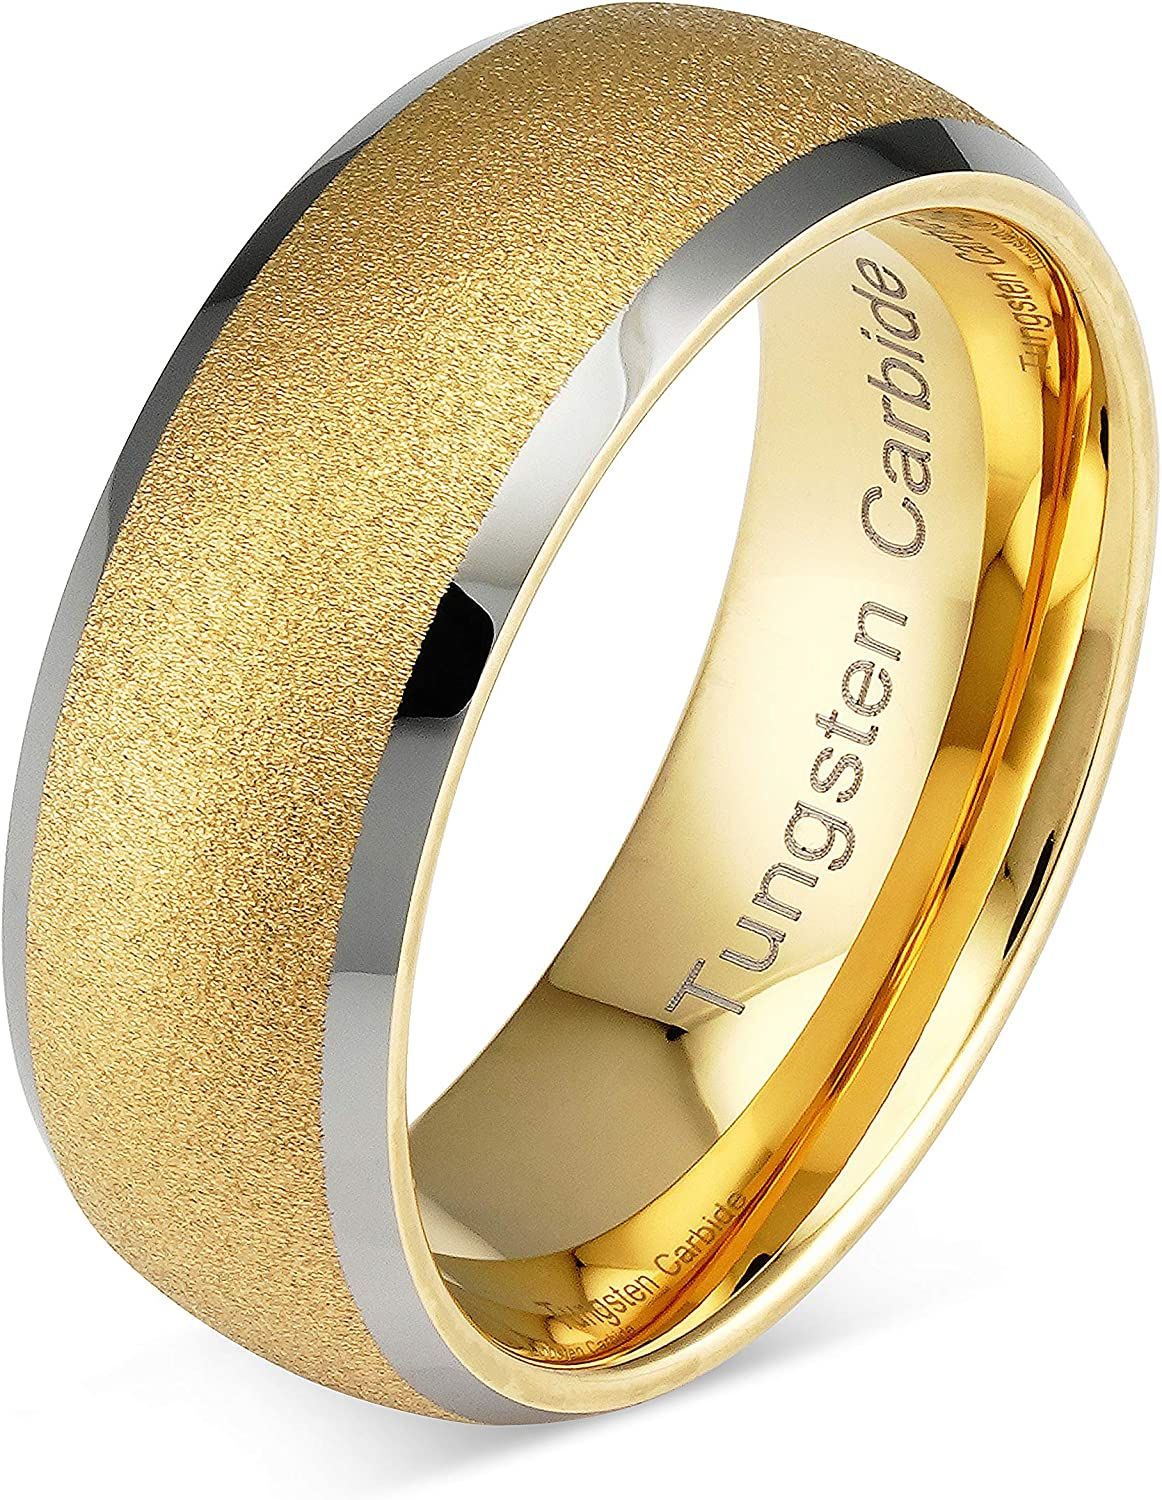 100S JEWELRY Tungsten Rings for Men Women Gold Wedding Band Sandblasted Silver Edge Sizes 6-16